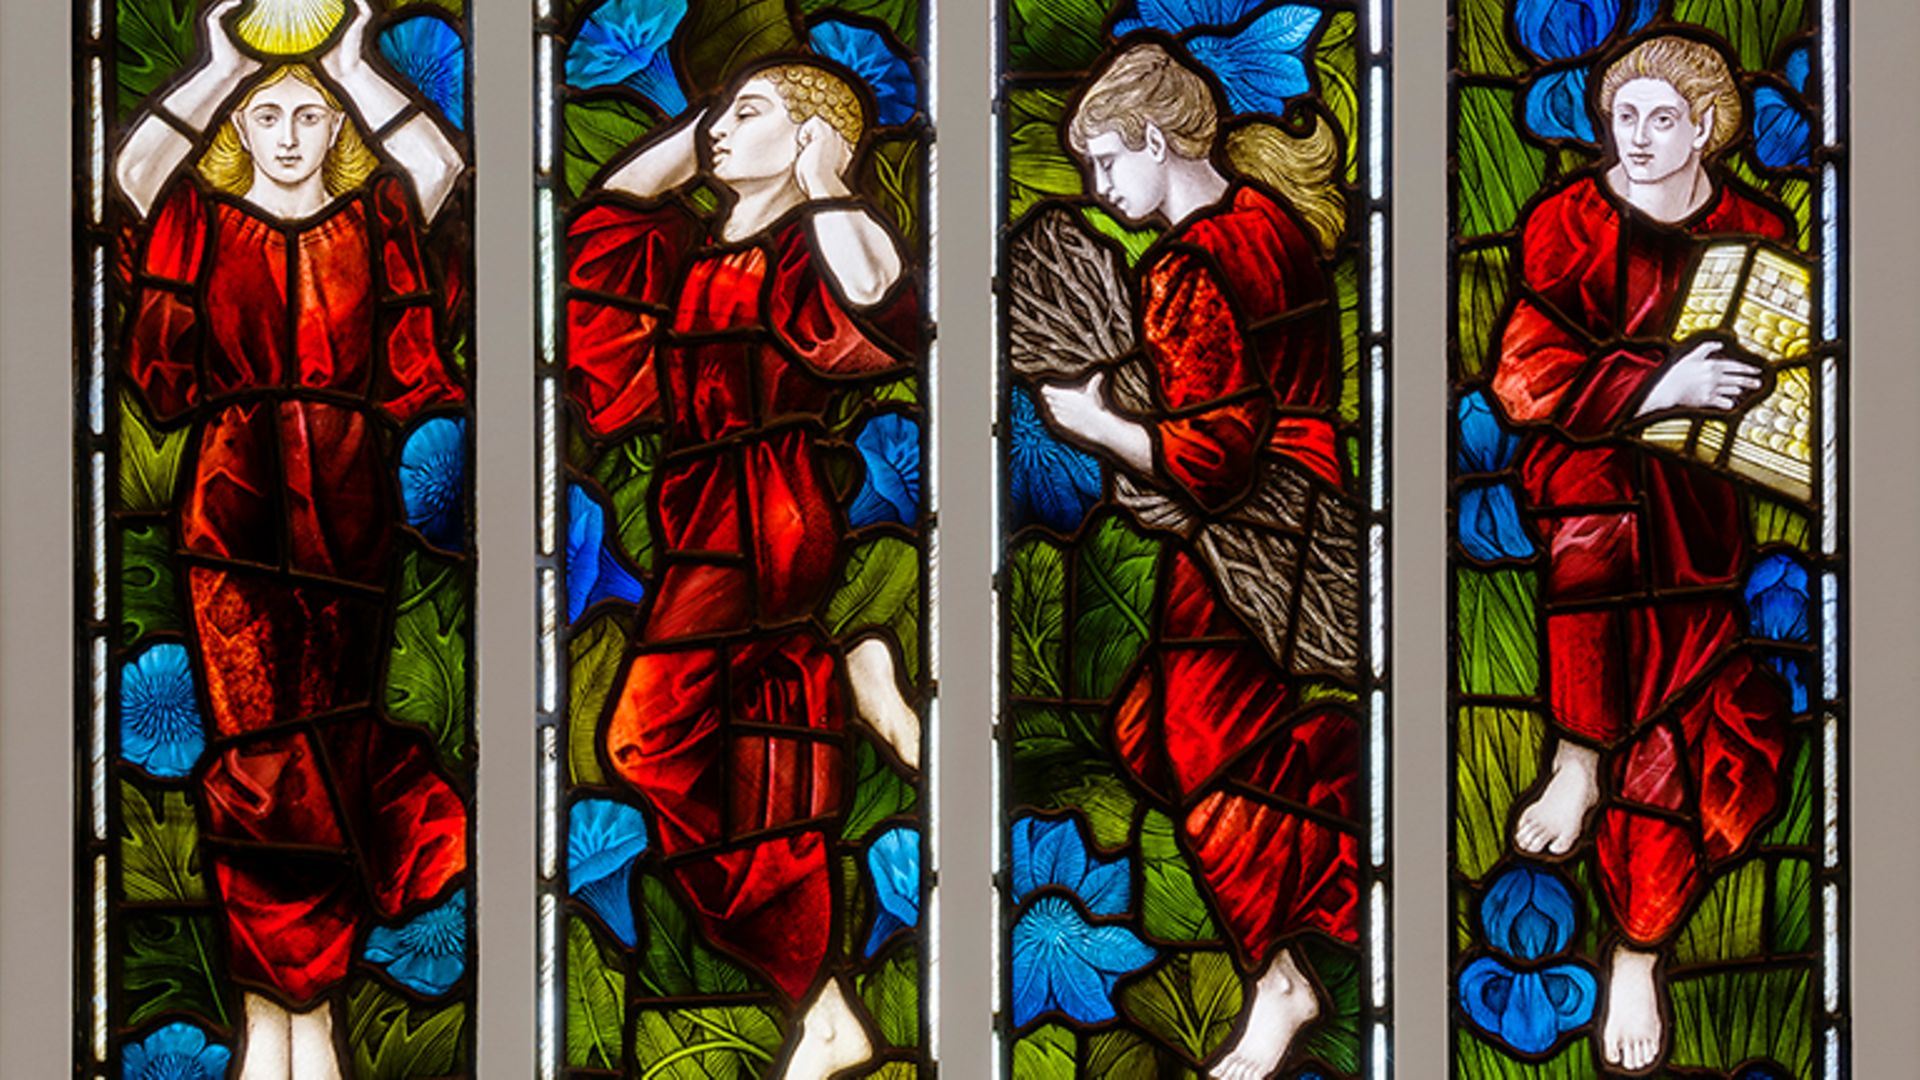 A stained glass window, originally in Soham House, Newmarket, Suffolk, from the William Morris Gallery, Century Guild exhibition - Credit: William Morris Gallery